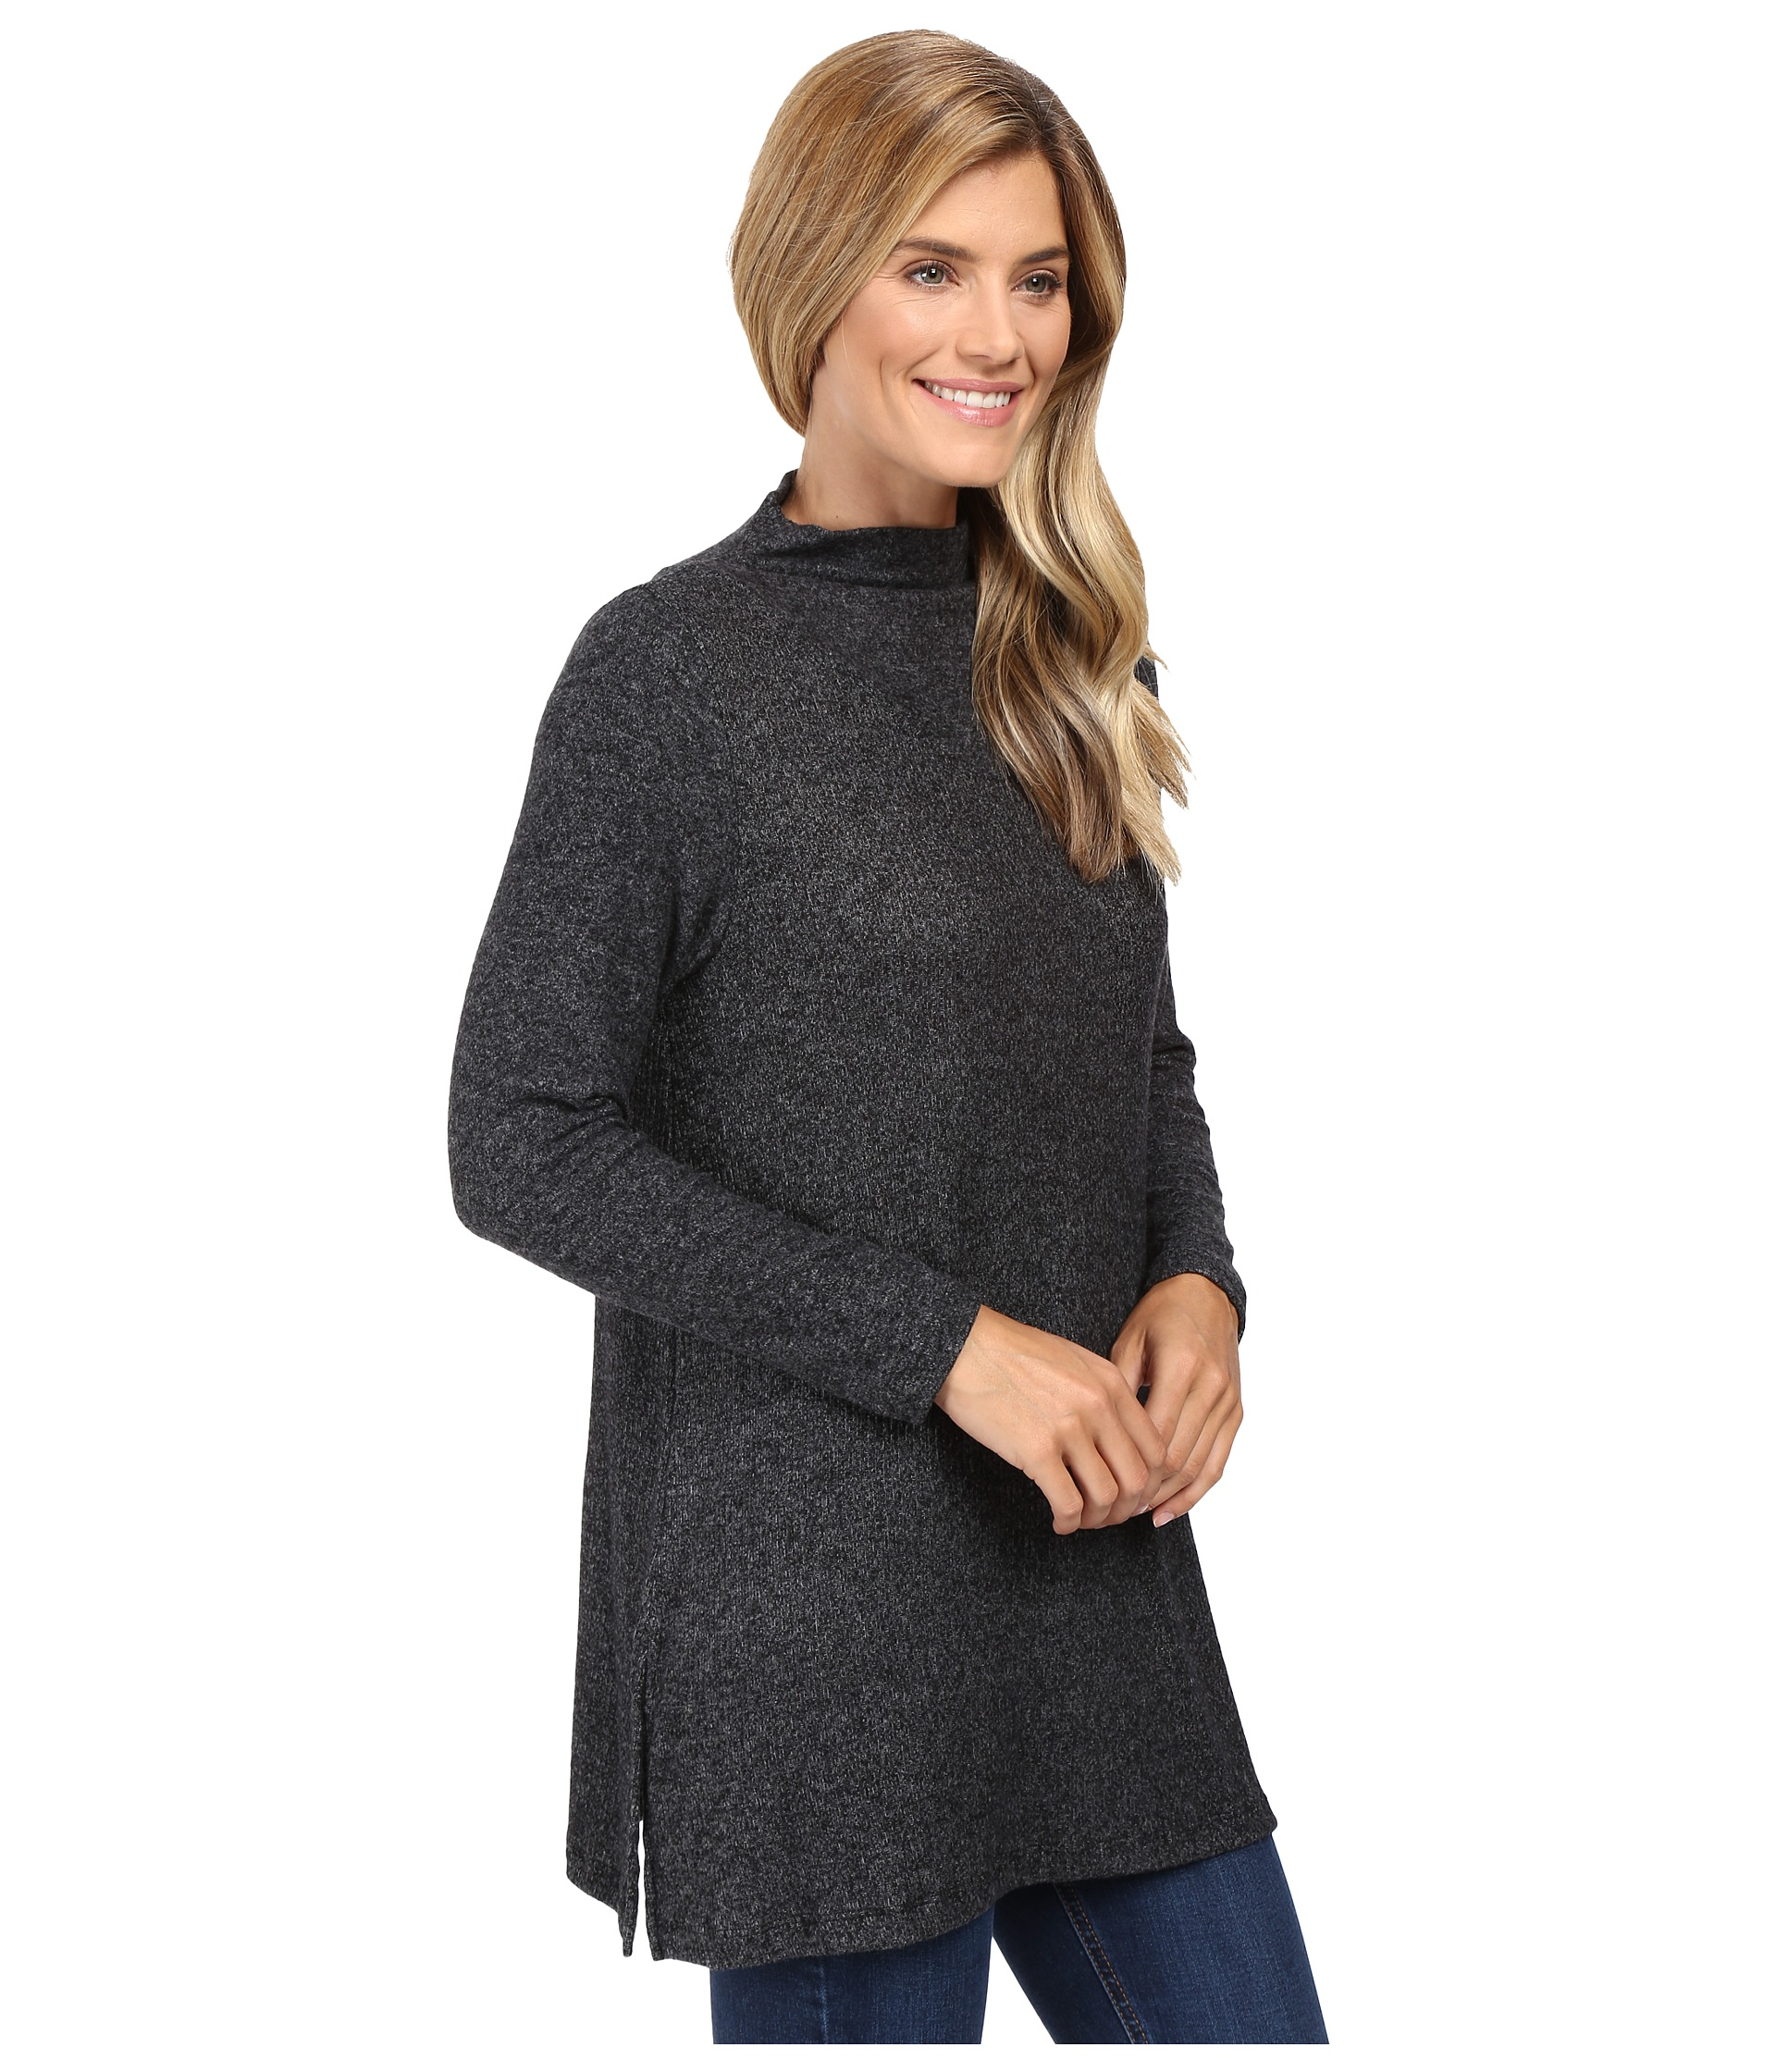 trueiupnbp.gq: long black tunic. From The Community. Long batwing sleeve loose pullover casual sweater perfect for pairing Free to Live Women's Long Flowy Short Sleeve Or Sleeveless Tunic Made in USA. by Free to Live. $ - $ $ 5 $ 19 95 Prime. FREE Shipping on eligible orders.